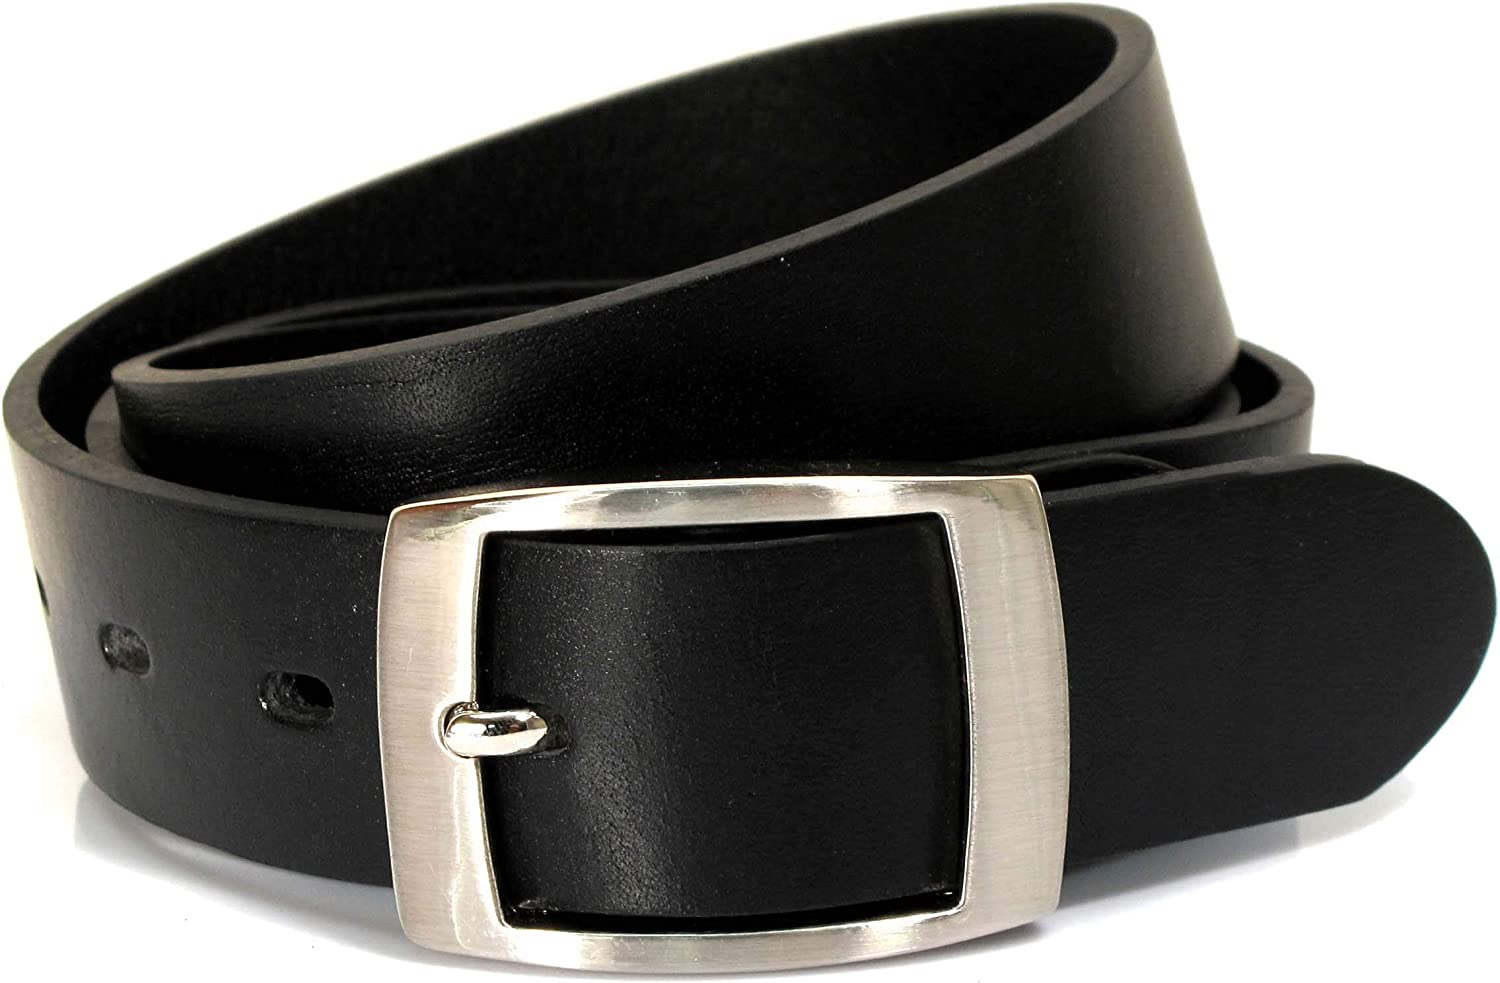 UM1 Mens Real Genuine Leather Black Belt 1.25 Wide S-XL Thick Long Casual Jeans